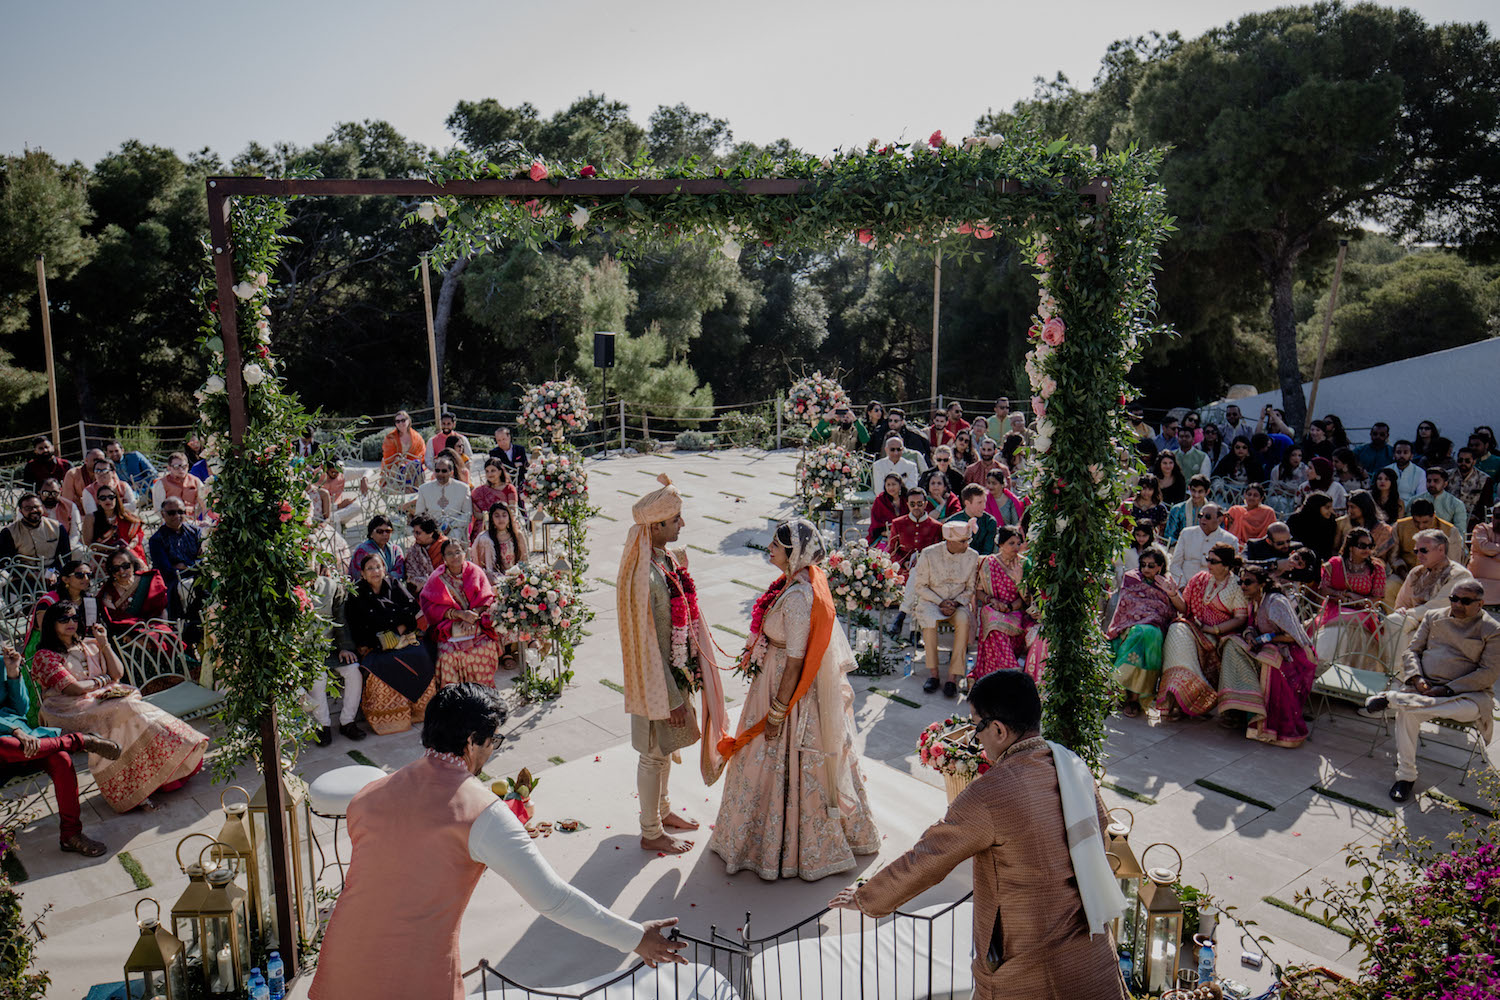 Hindu wedding by the sea in Sitges